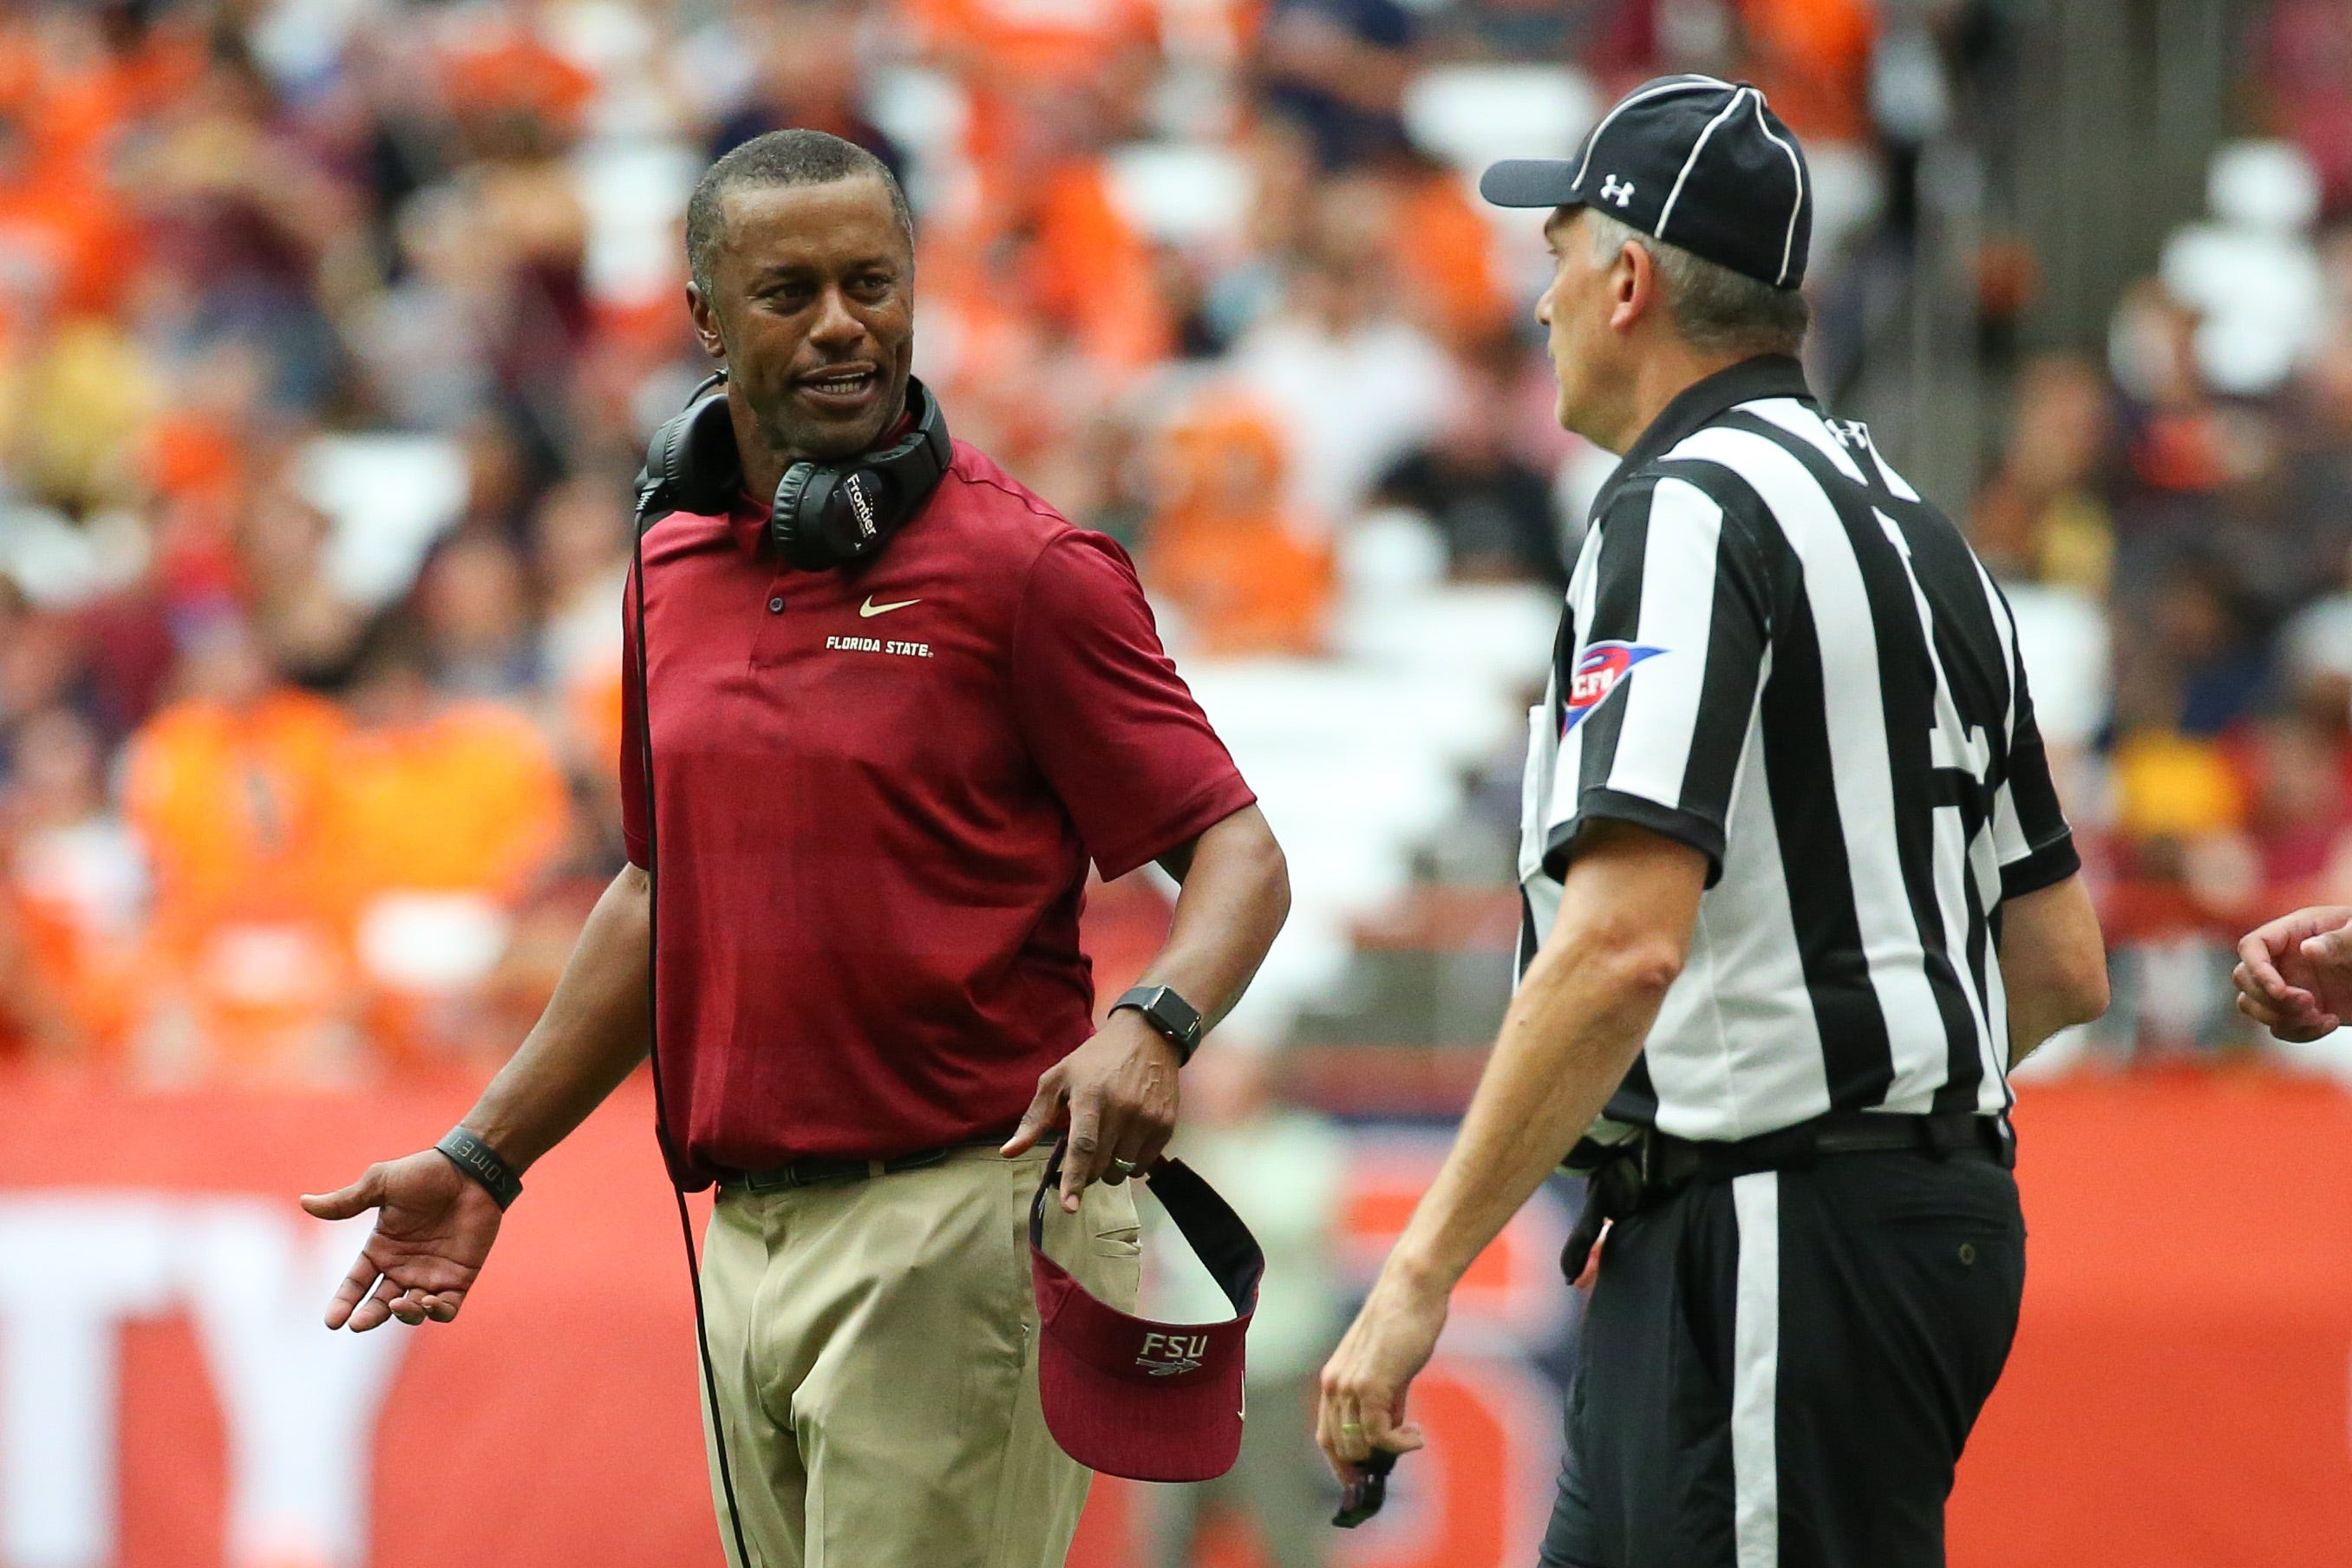 Several GoFundMe accounts created to 'buy out' Florida State coach Willie Taggart